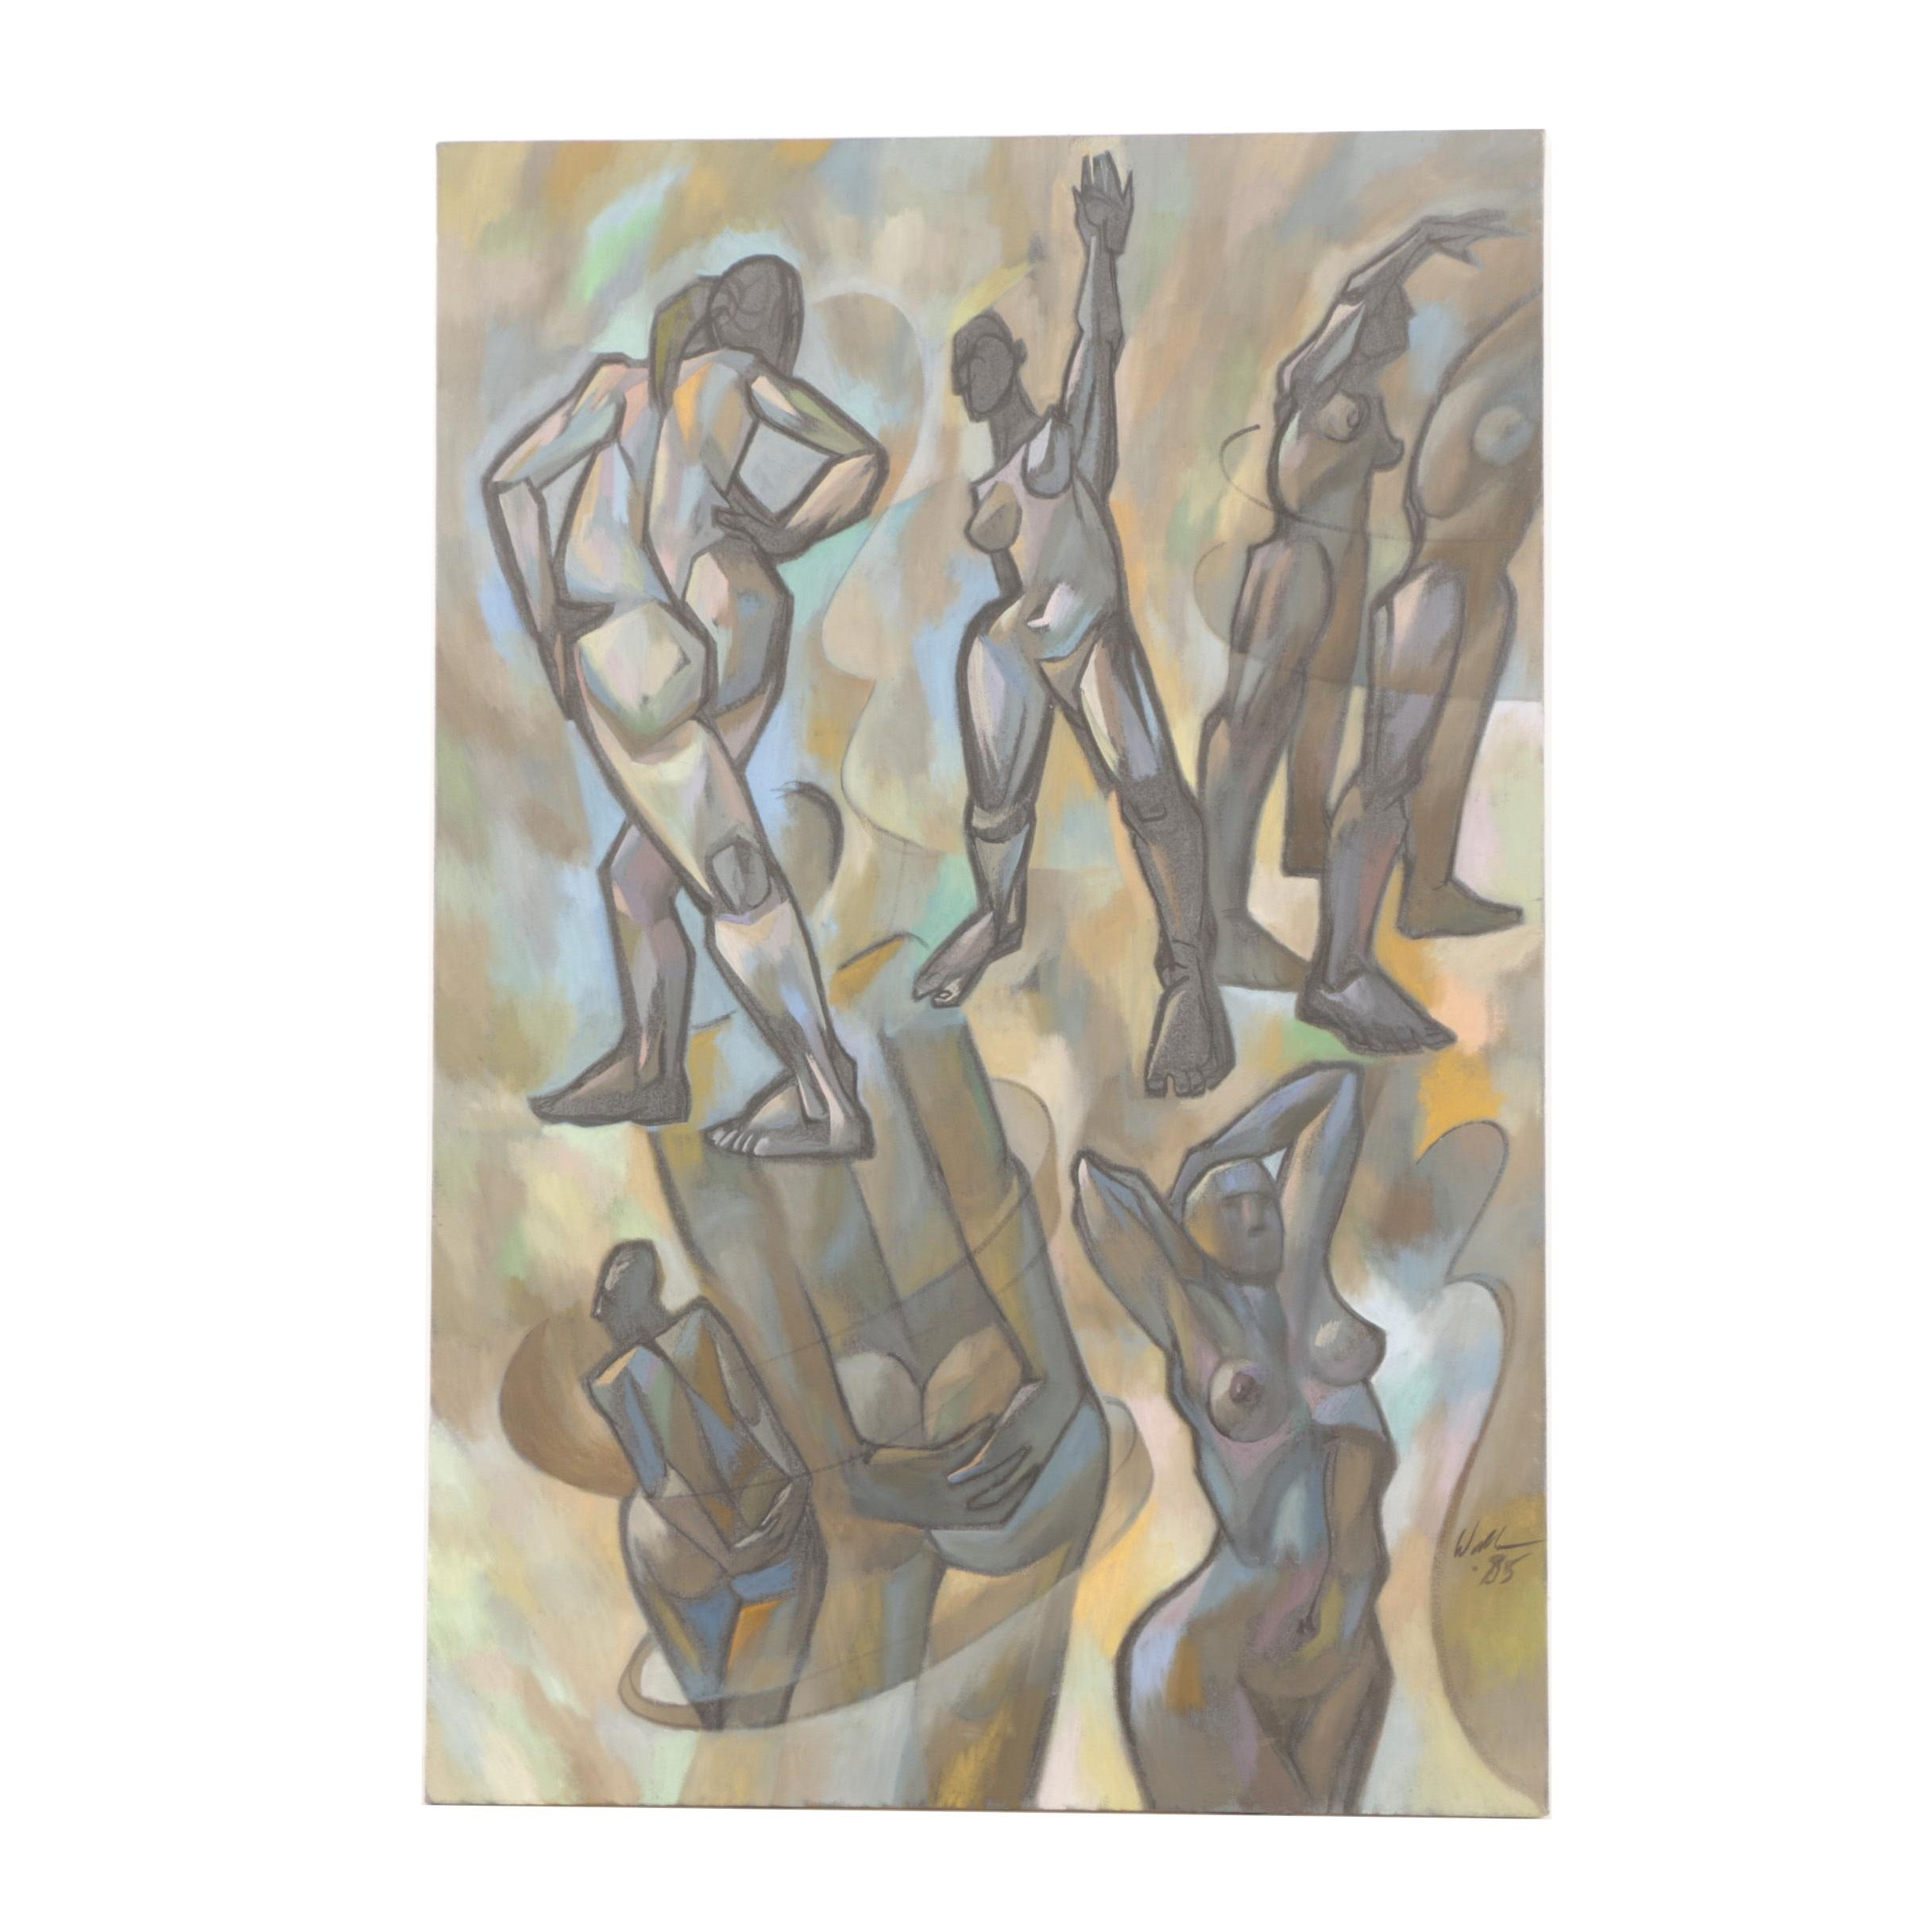 David Walker 1985 Oil Painting on Canvas of Stretching Figures